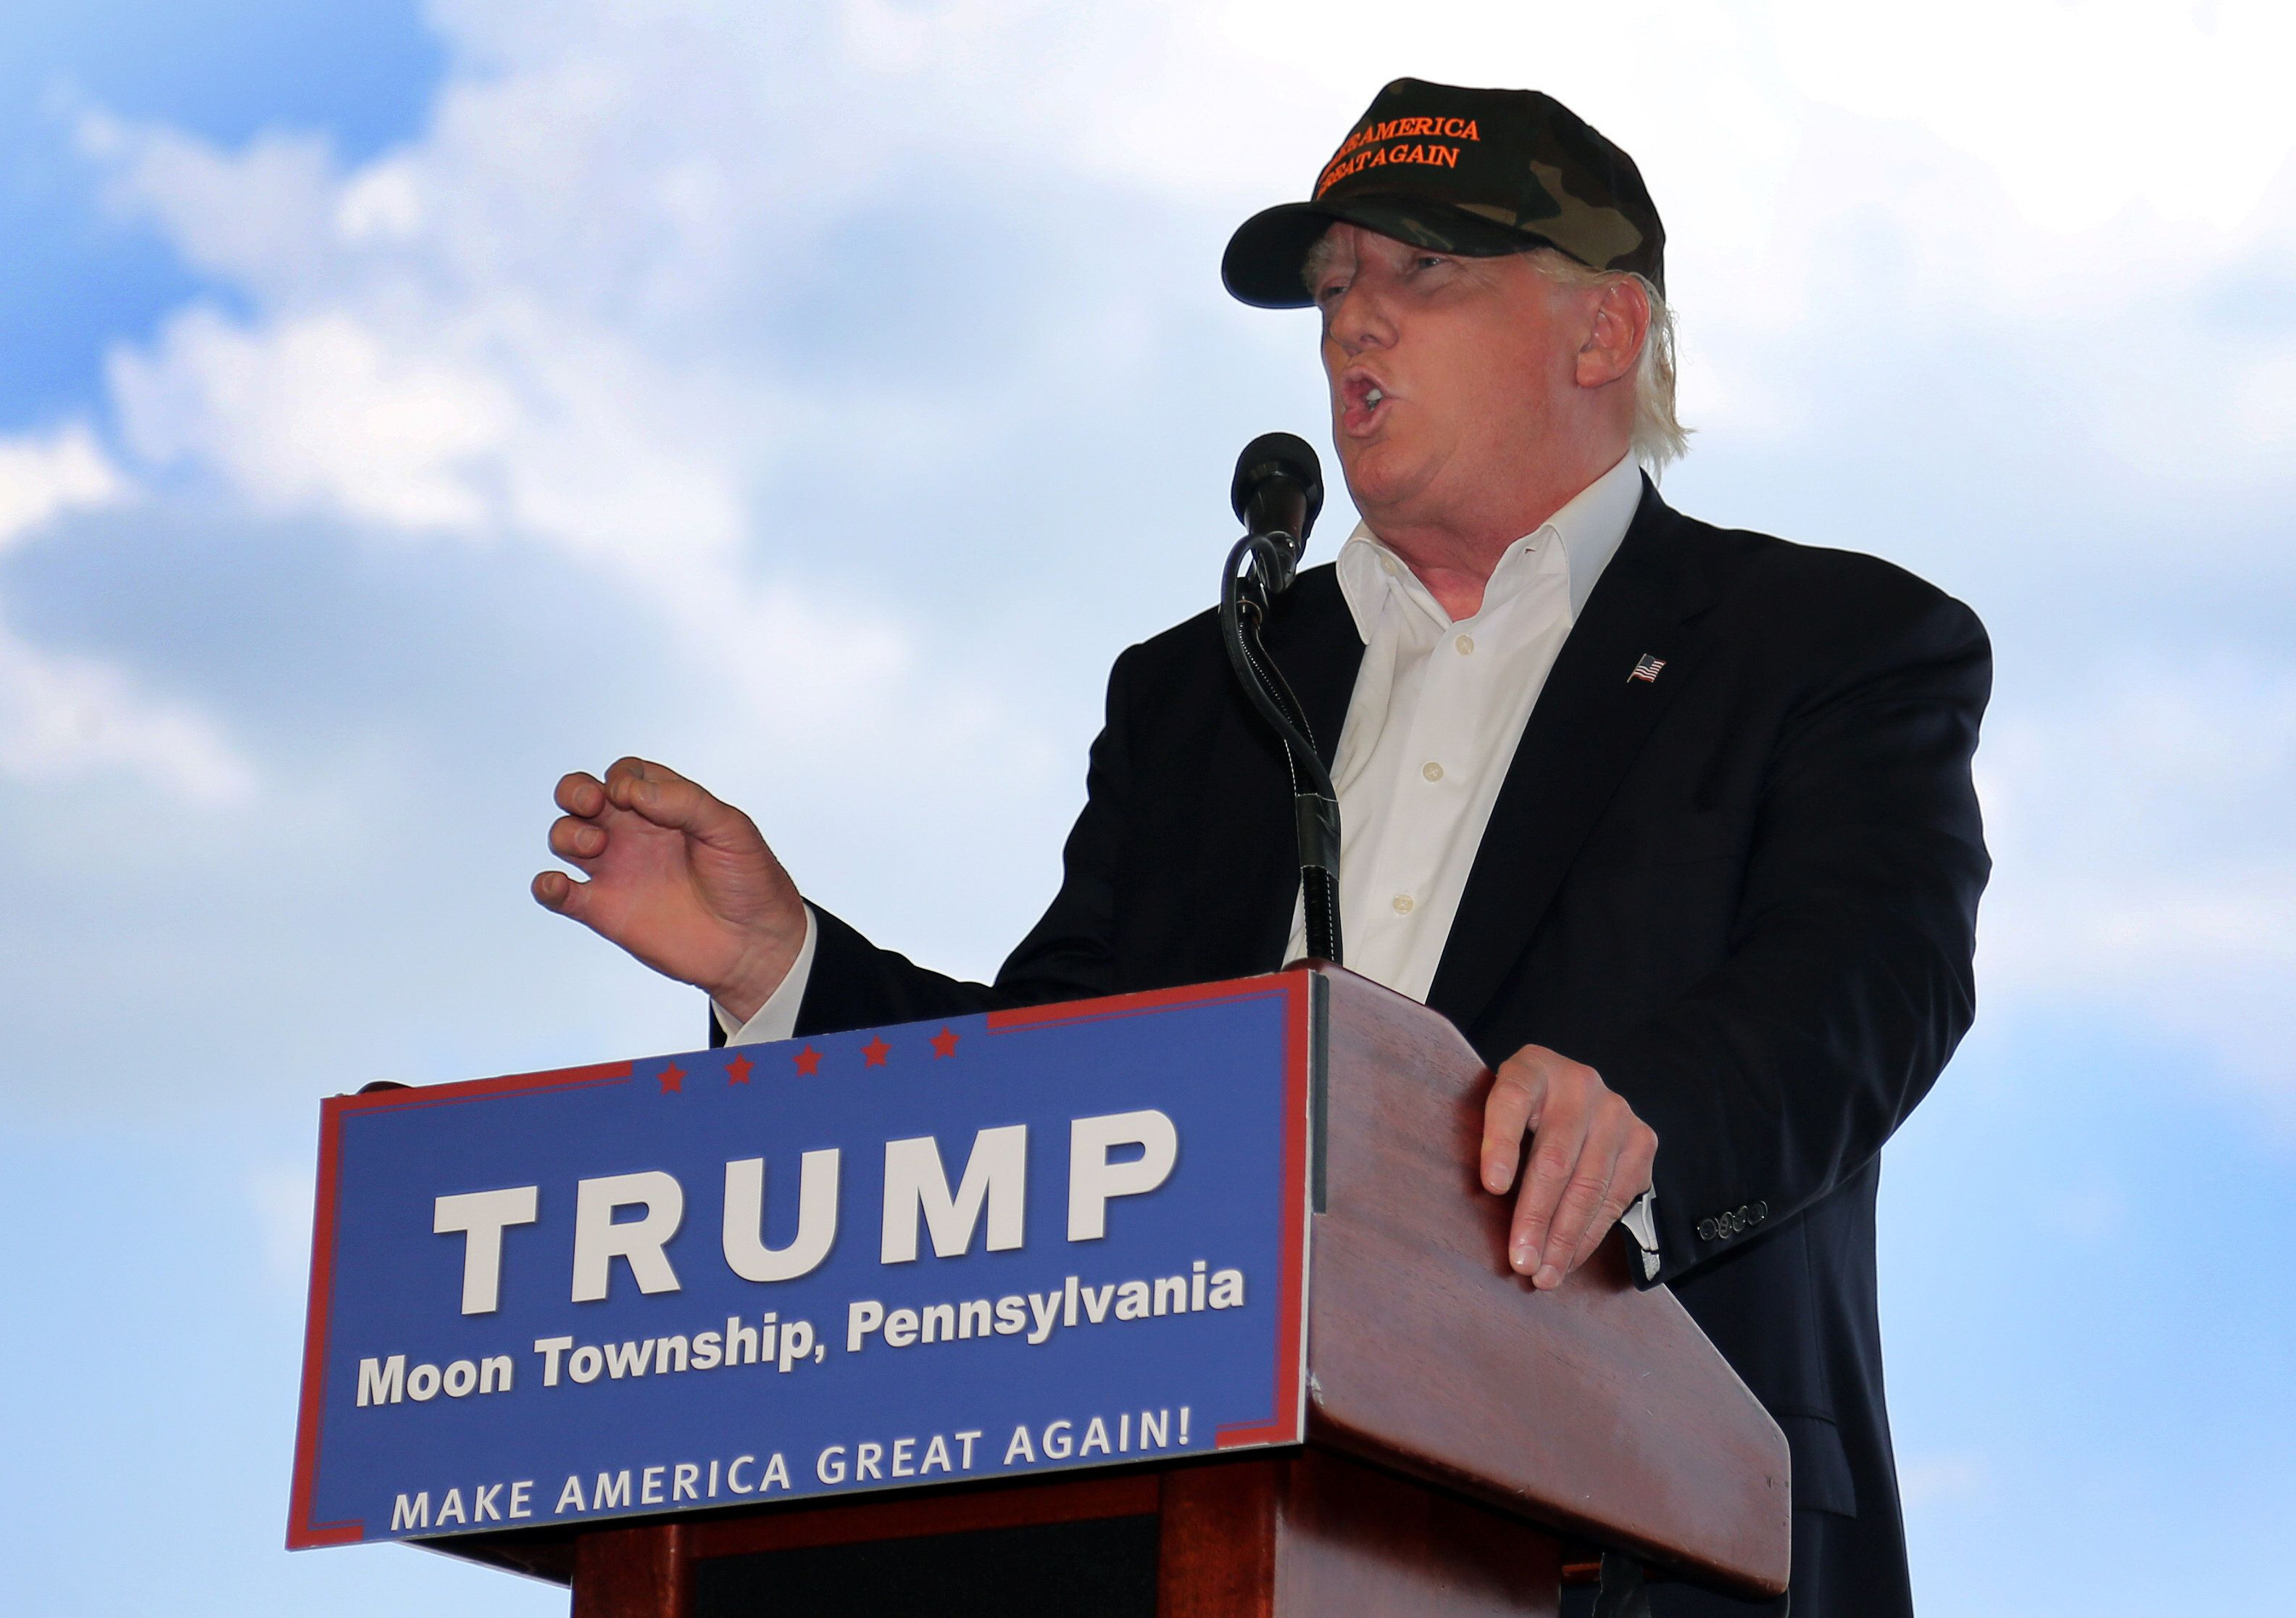 Donald Trump, the presumptive GOP presidential nominee, argued Monday that he would defend the LGBT community.